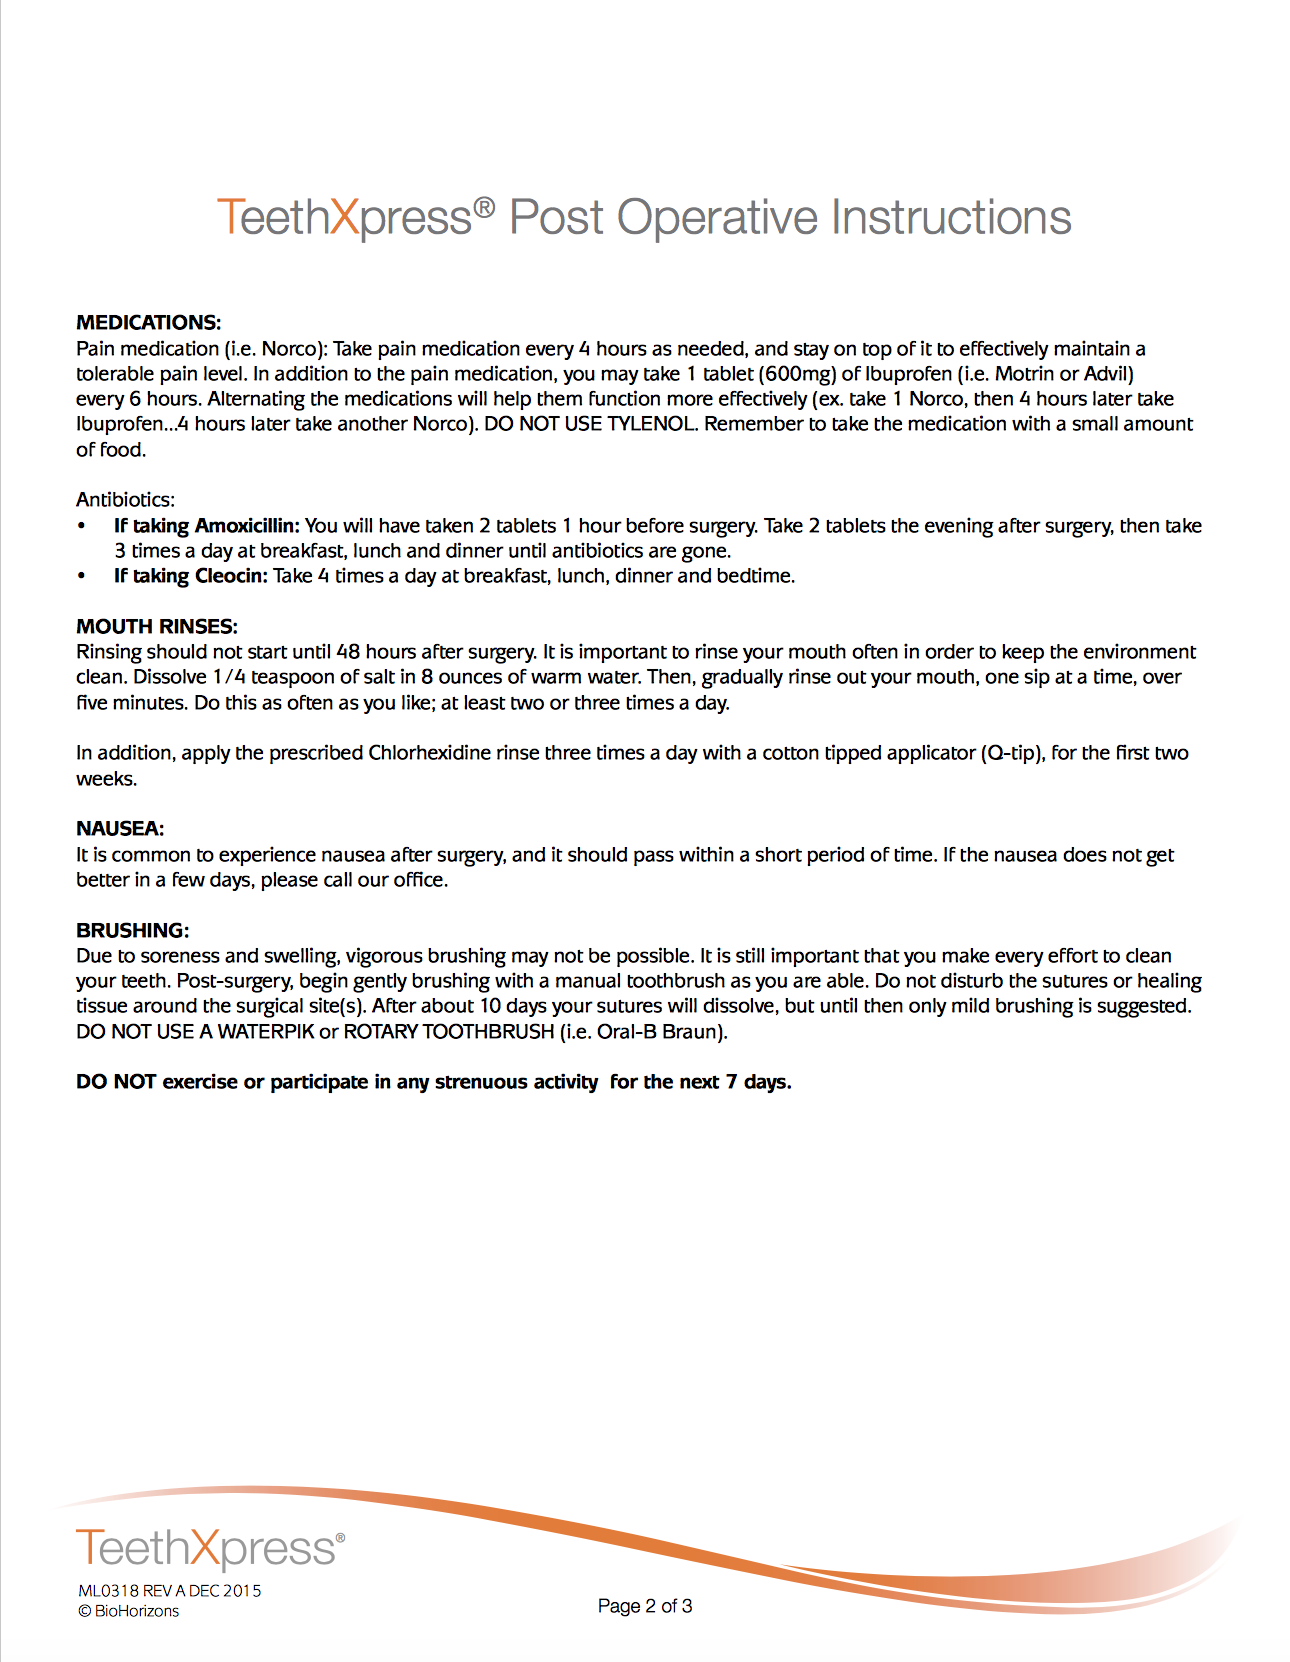 TeethXpress Post Op Instructions page 2